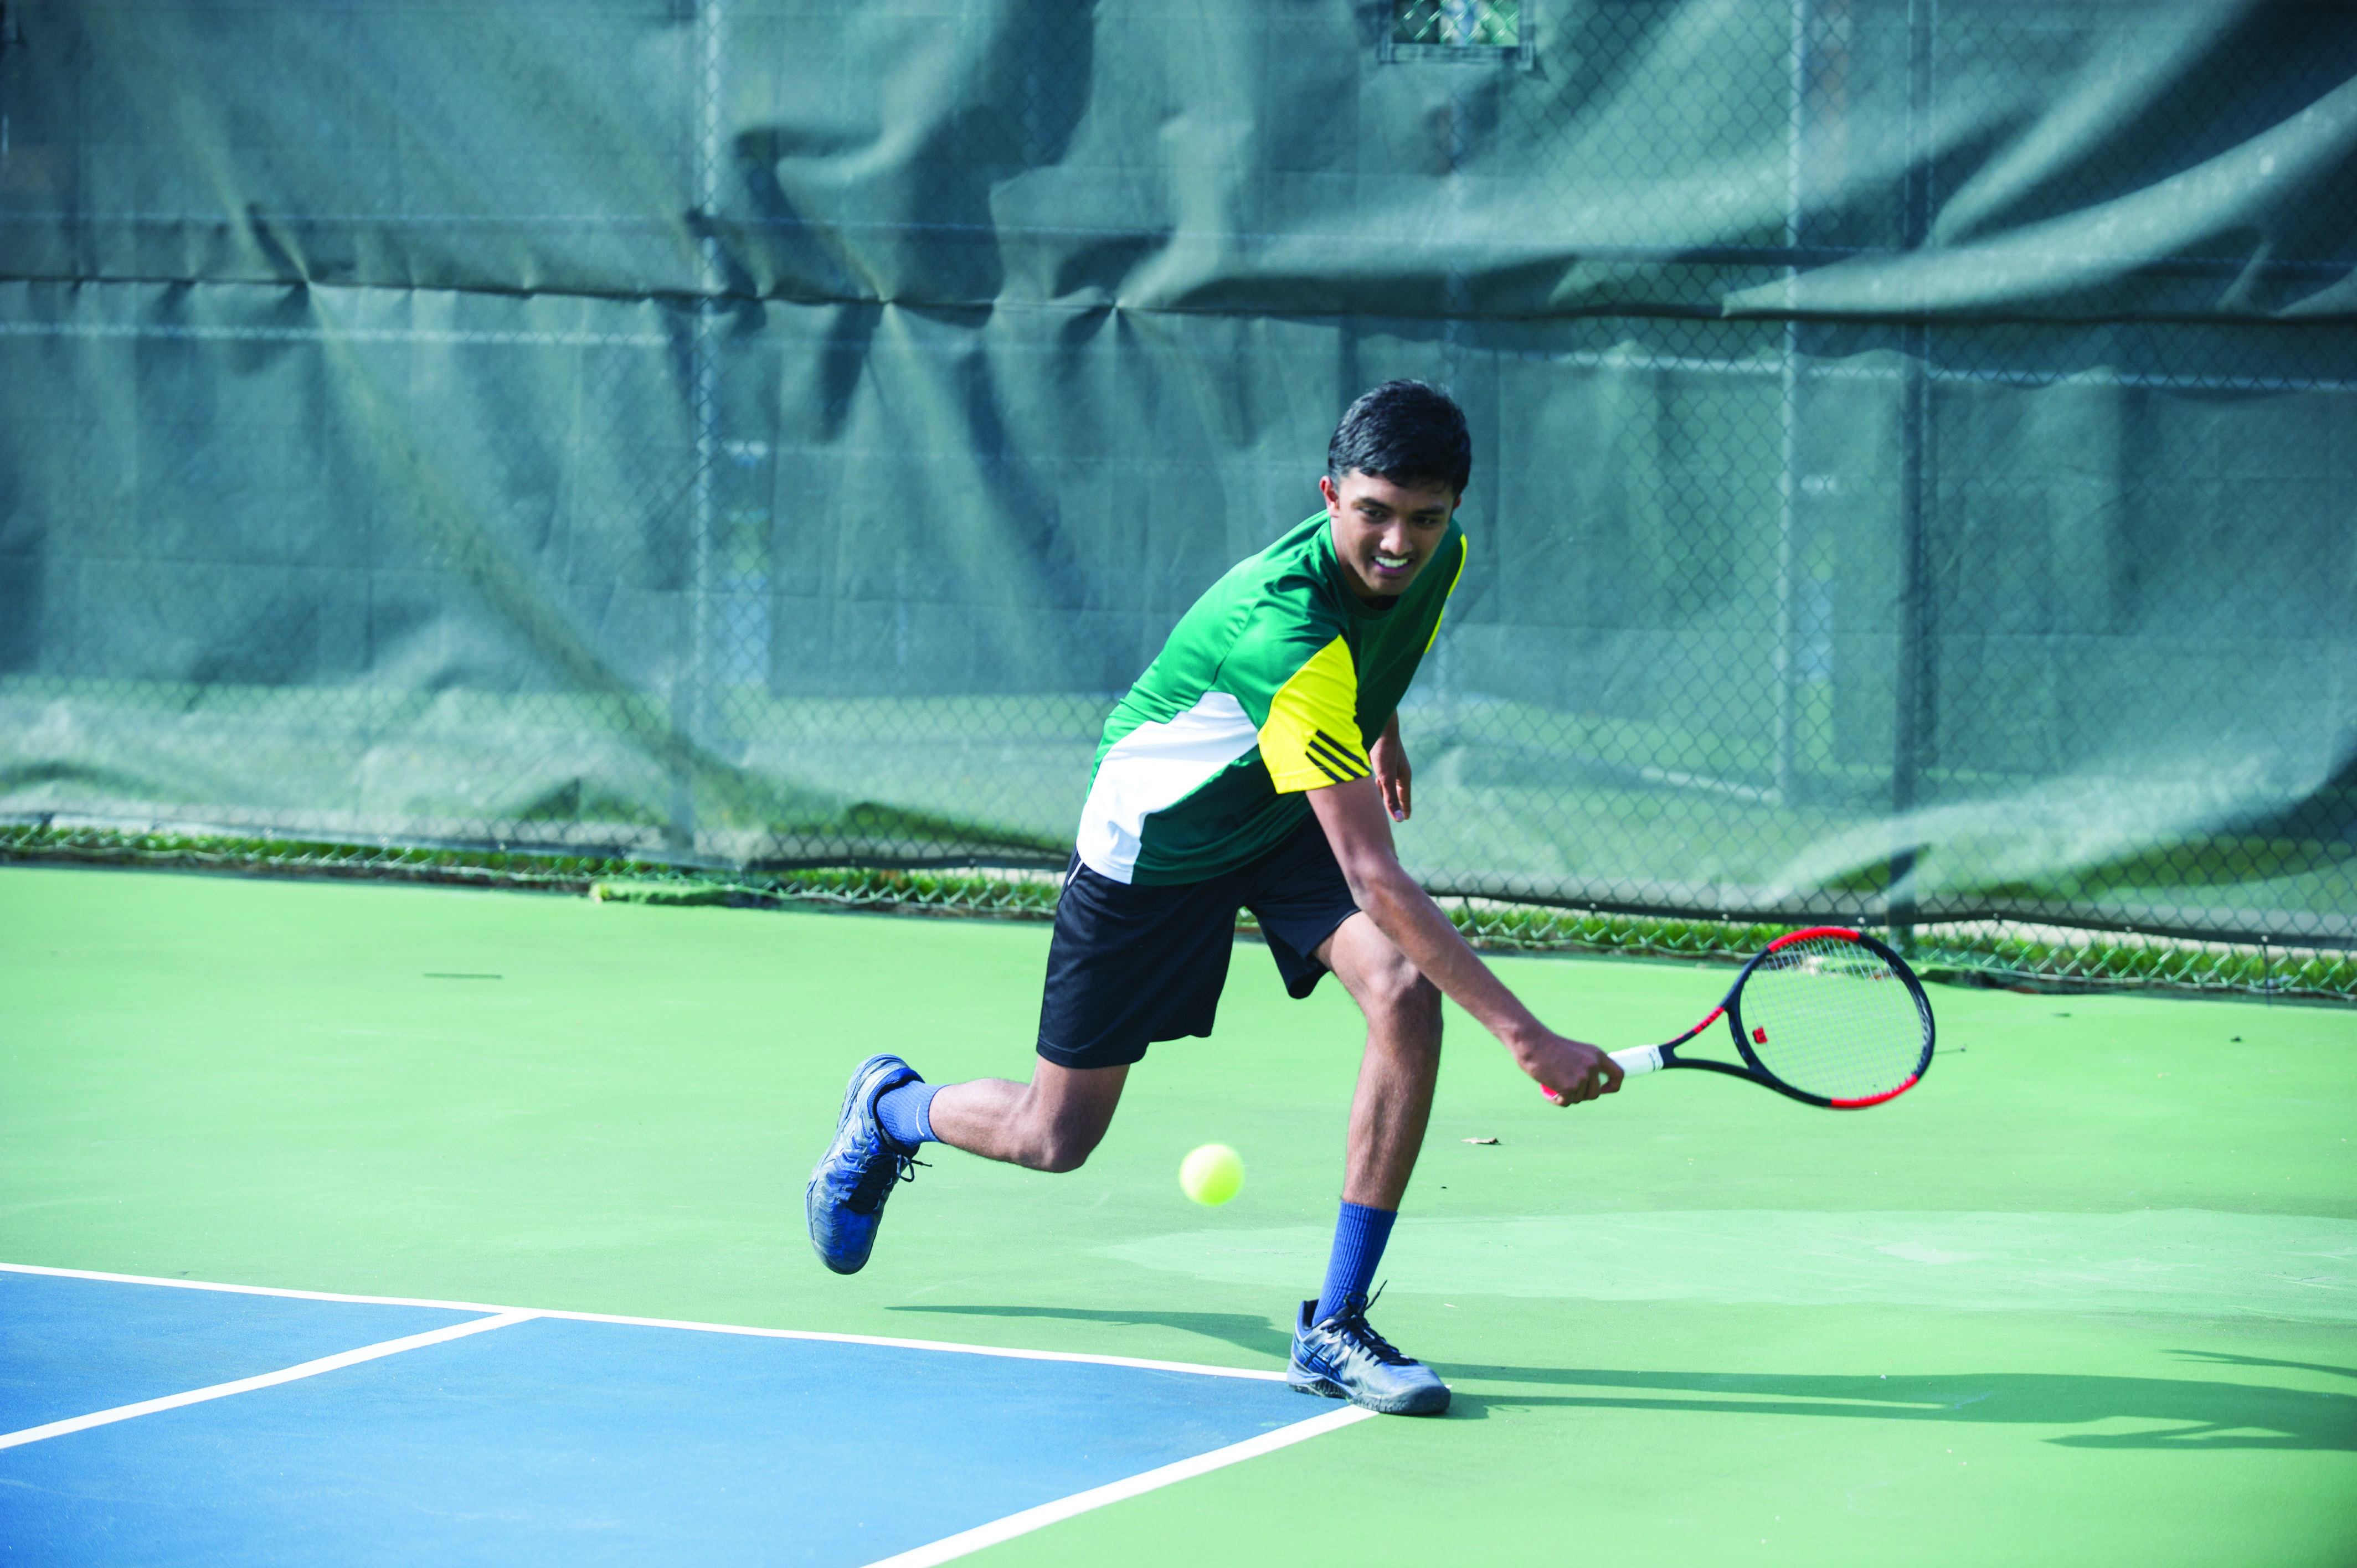 Junior Kavin Anand prepares to hit the ball with a back hand on April 26 against the Kewpies (9-0). The Bruins compete in individual districts May 12.